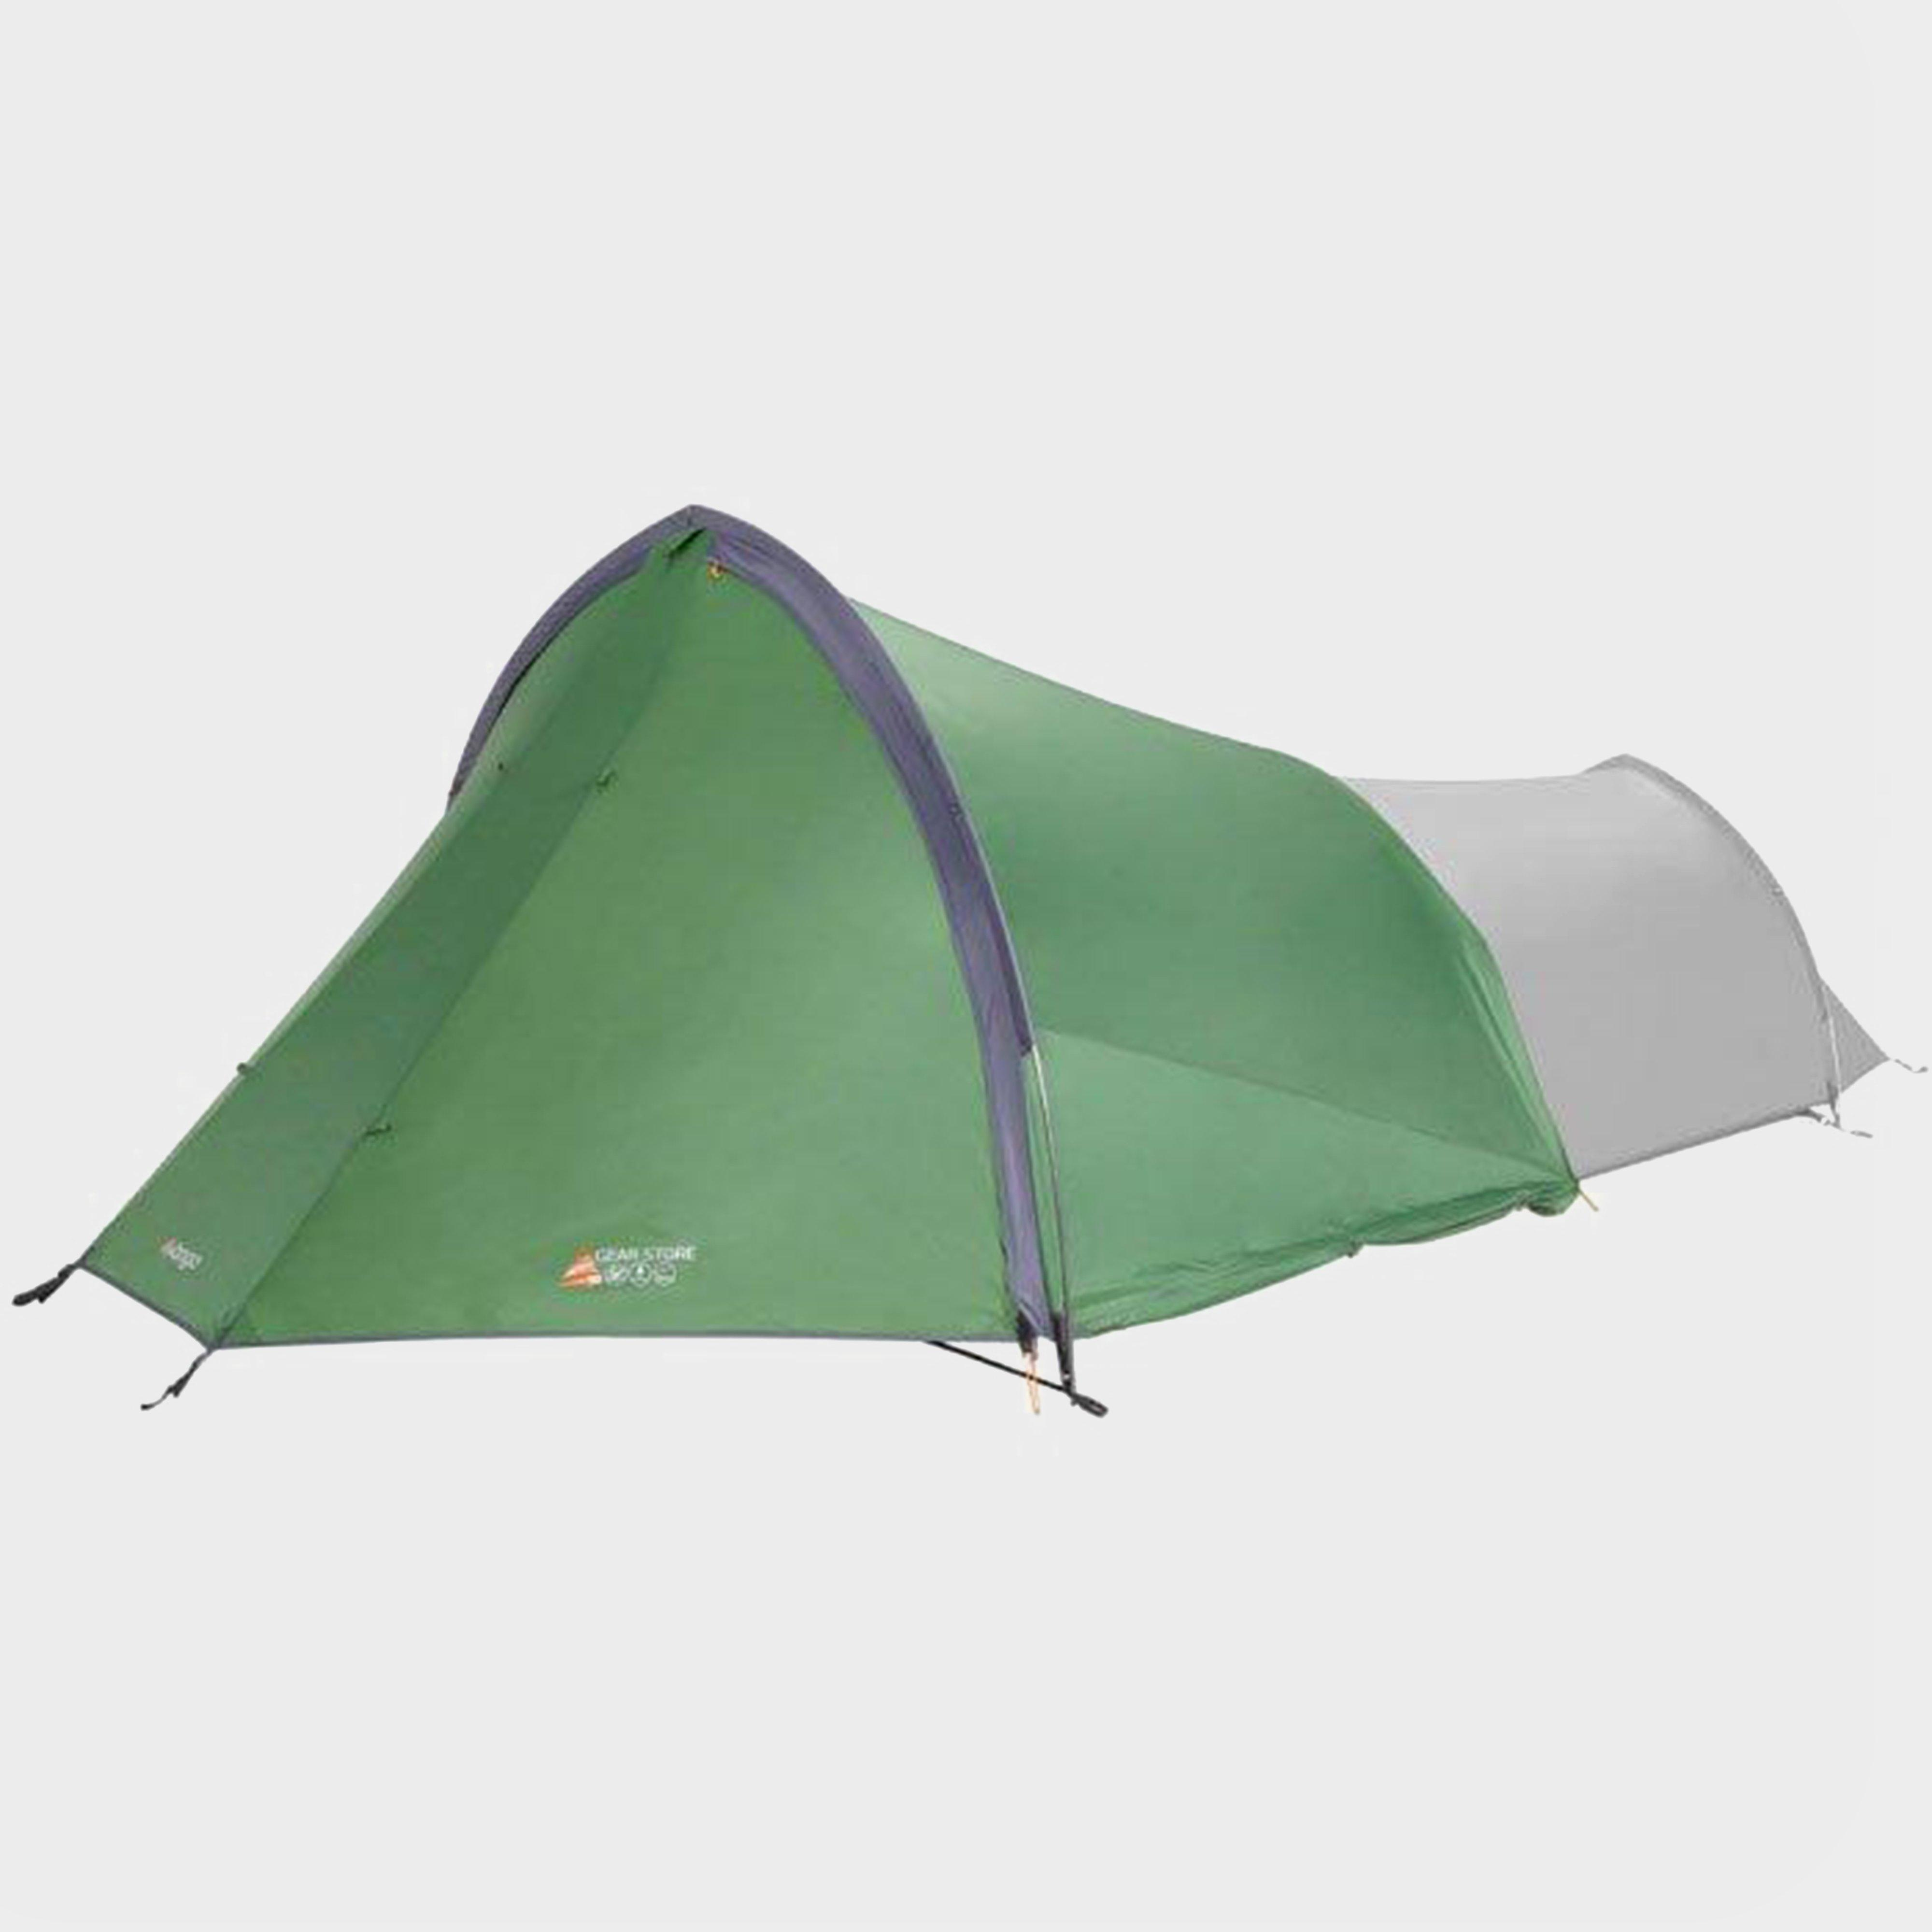 Vango Gear Store, Green